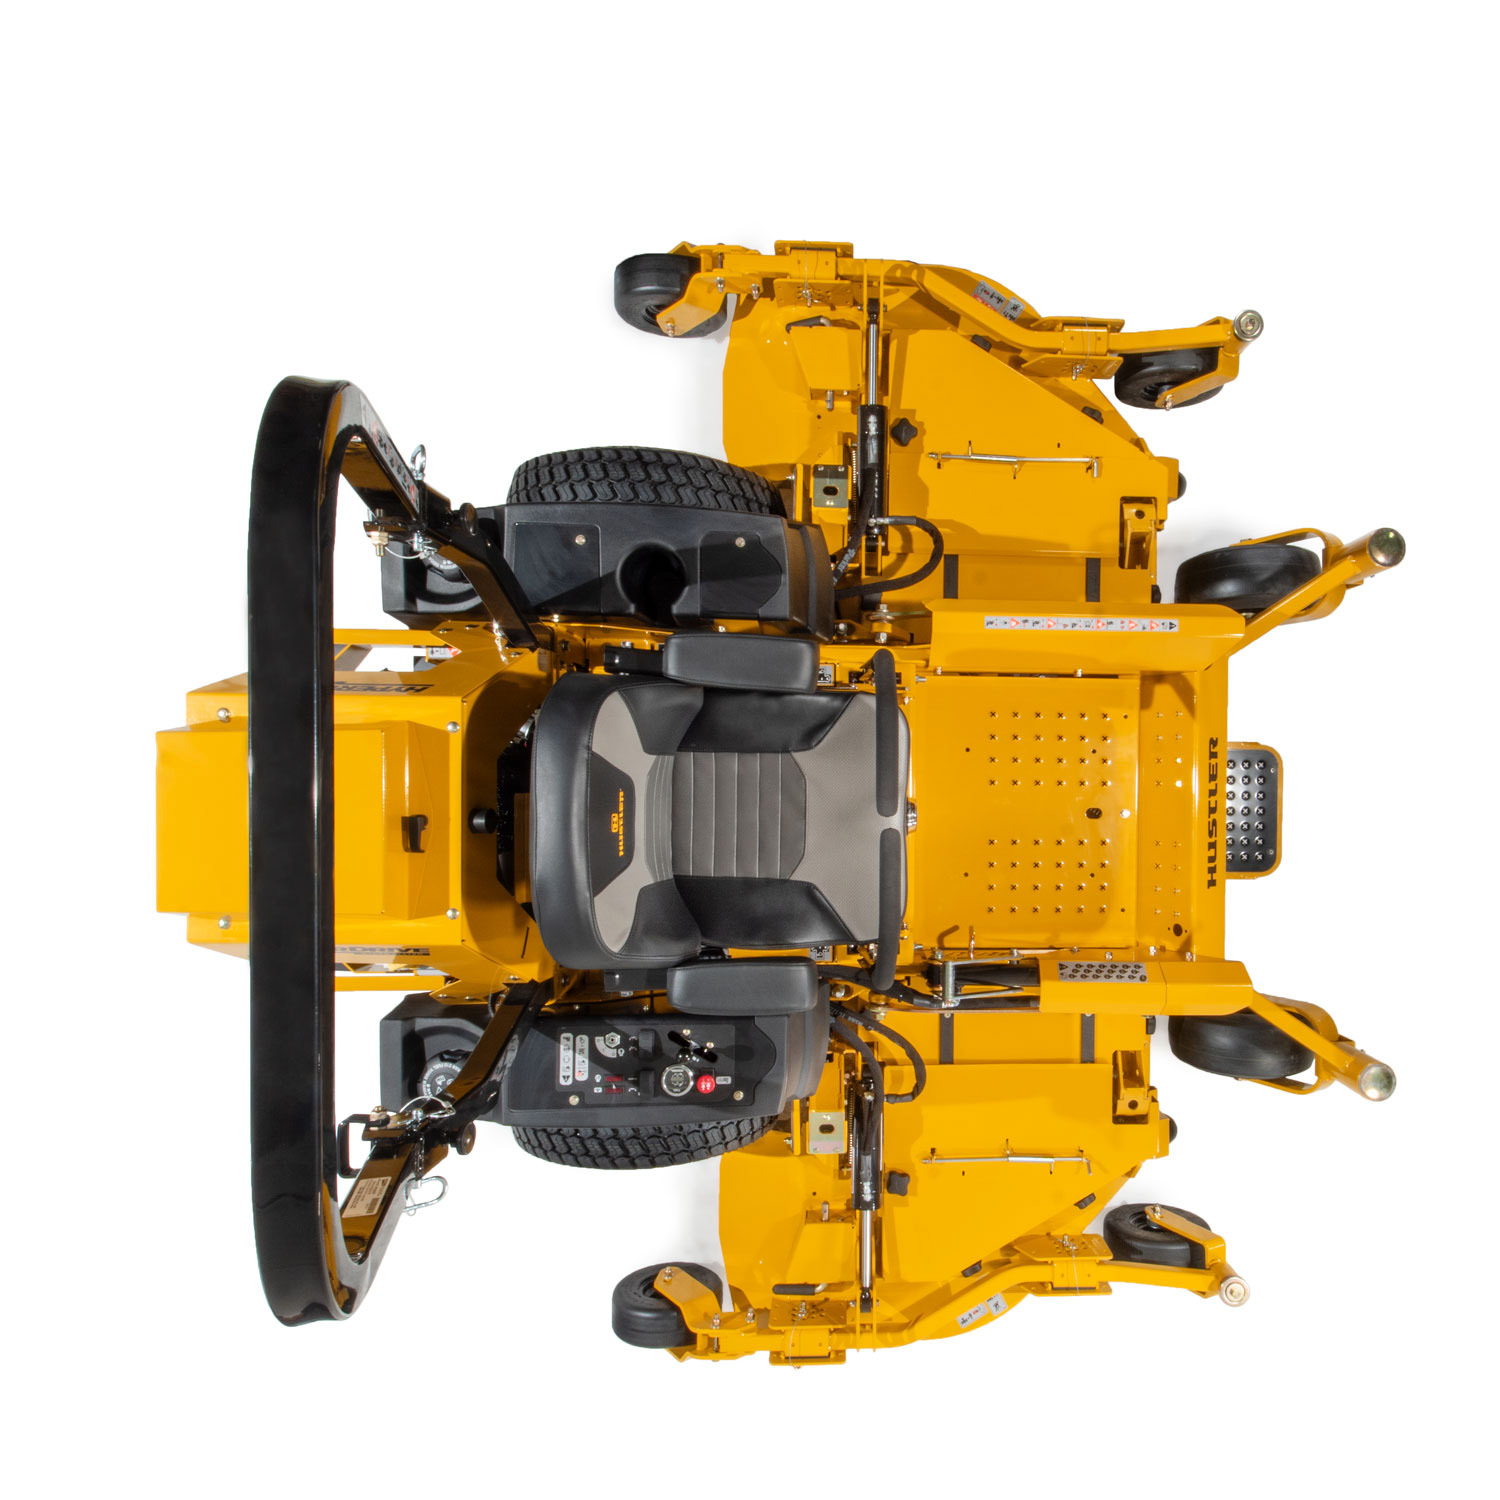 Image of a yellow wide area mid-mount mower from above